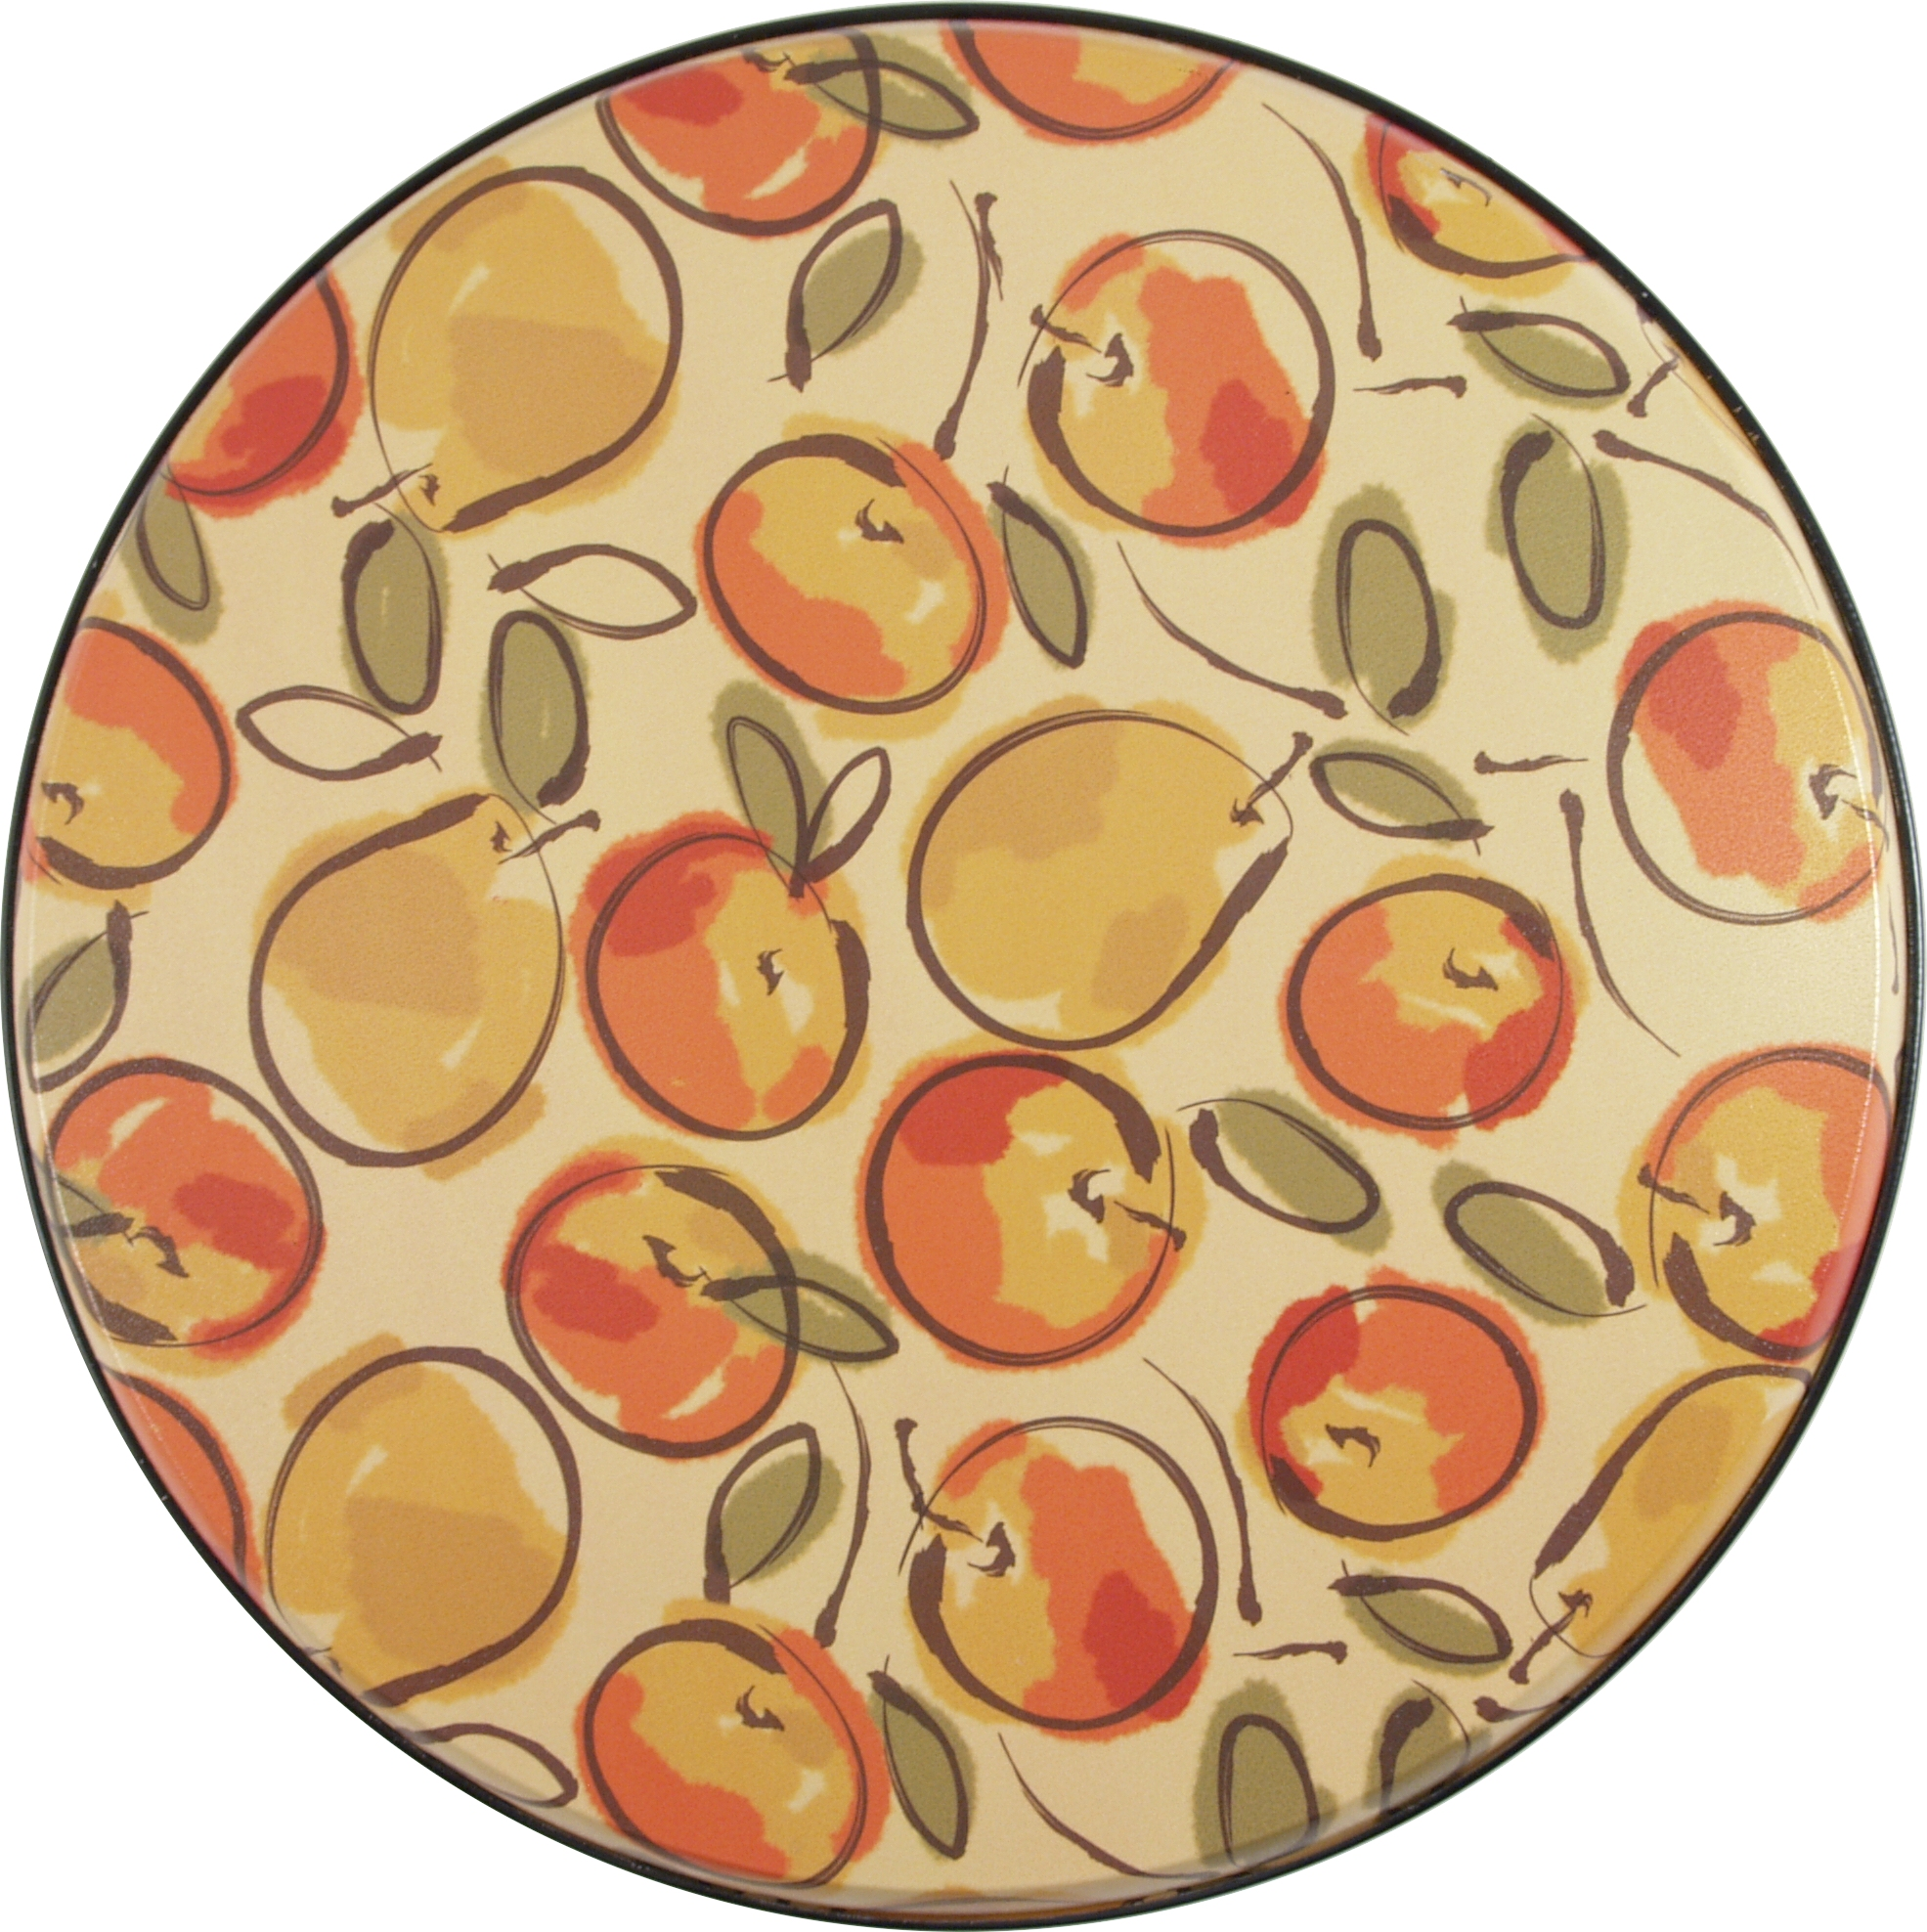 Fruit Explosion 4 Piece Round Burner Cover Set